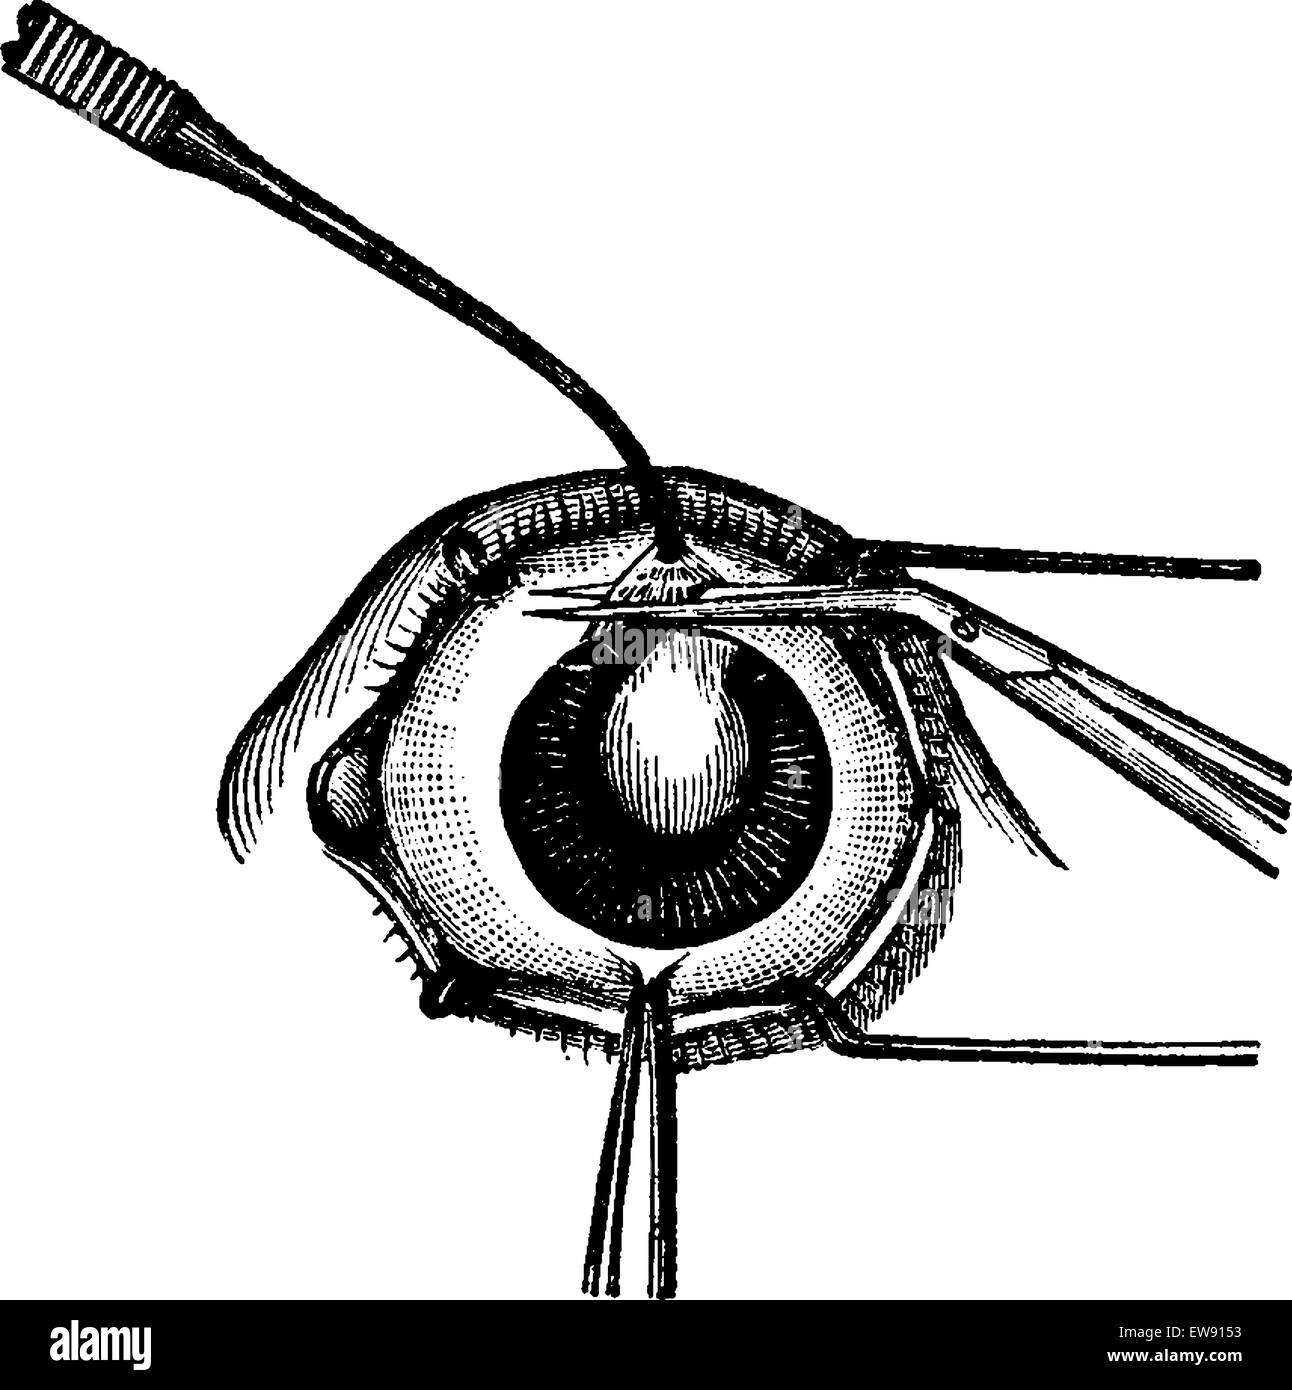 Iridectomy, showing pincers removing a flap from the upper part of the iris prior to cataract surgery, vintage engraved - Stock Vector